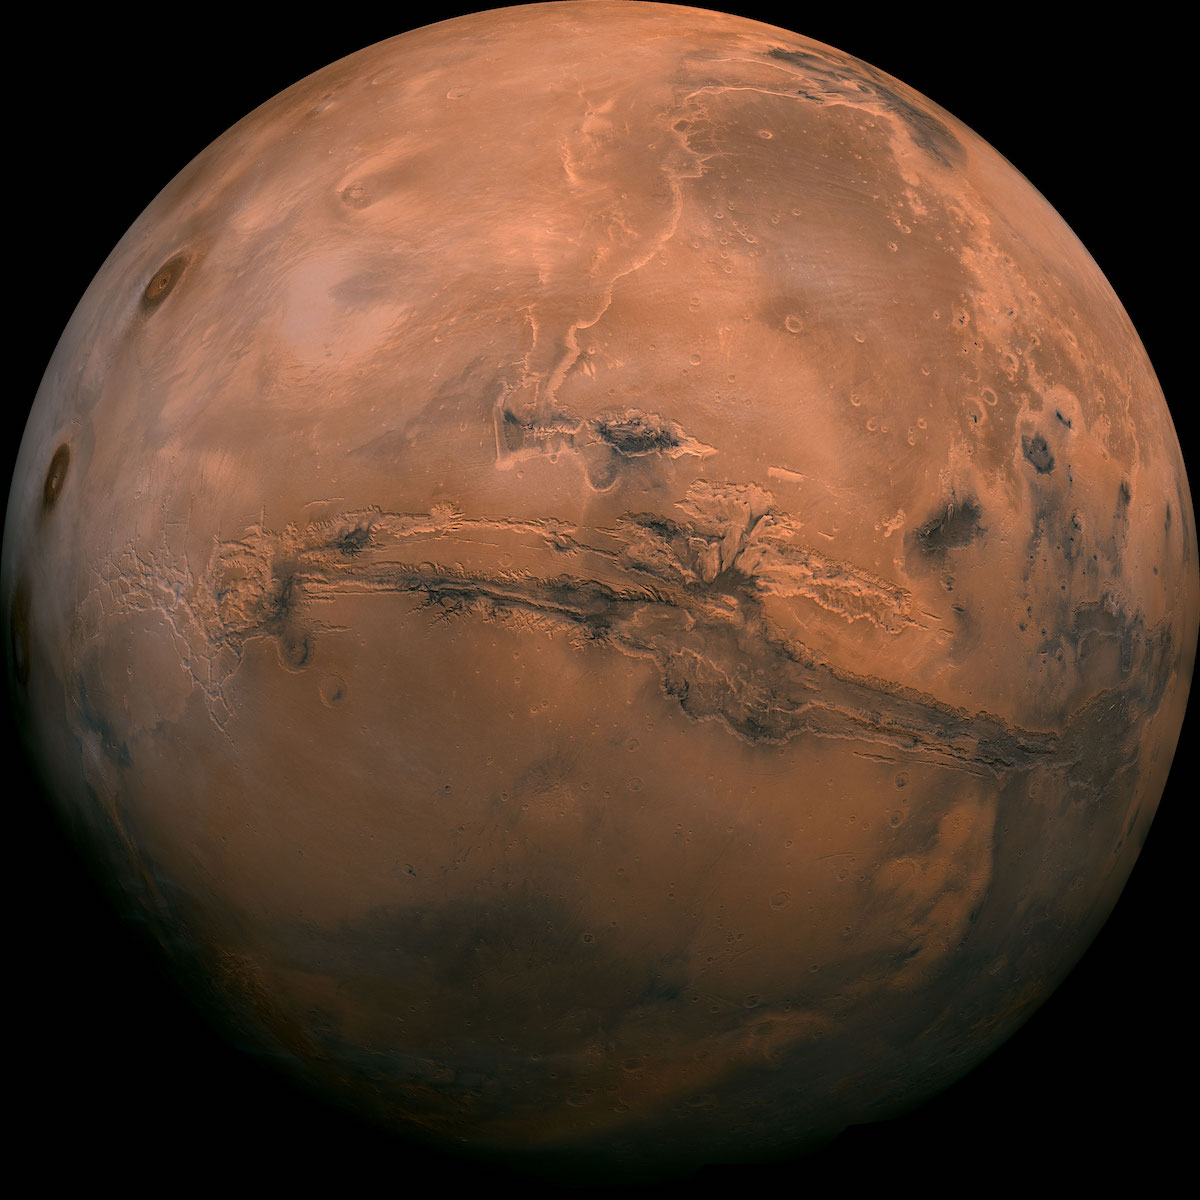 NASA Photo of Mariner Valley on Mars